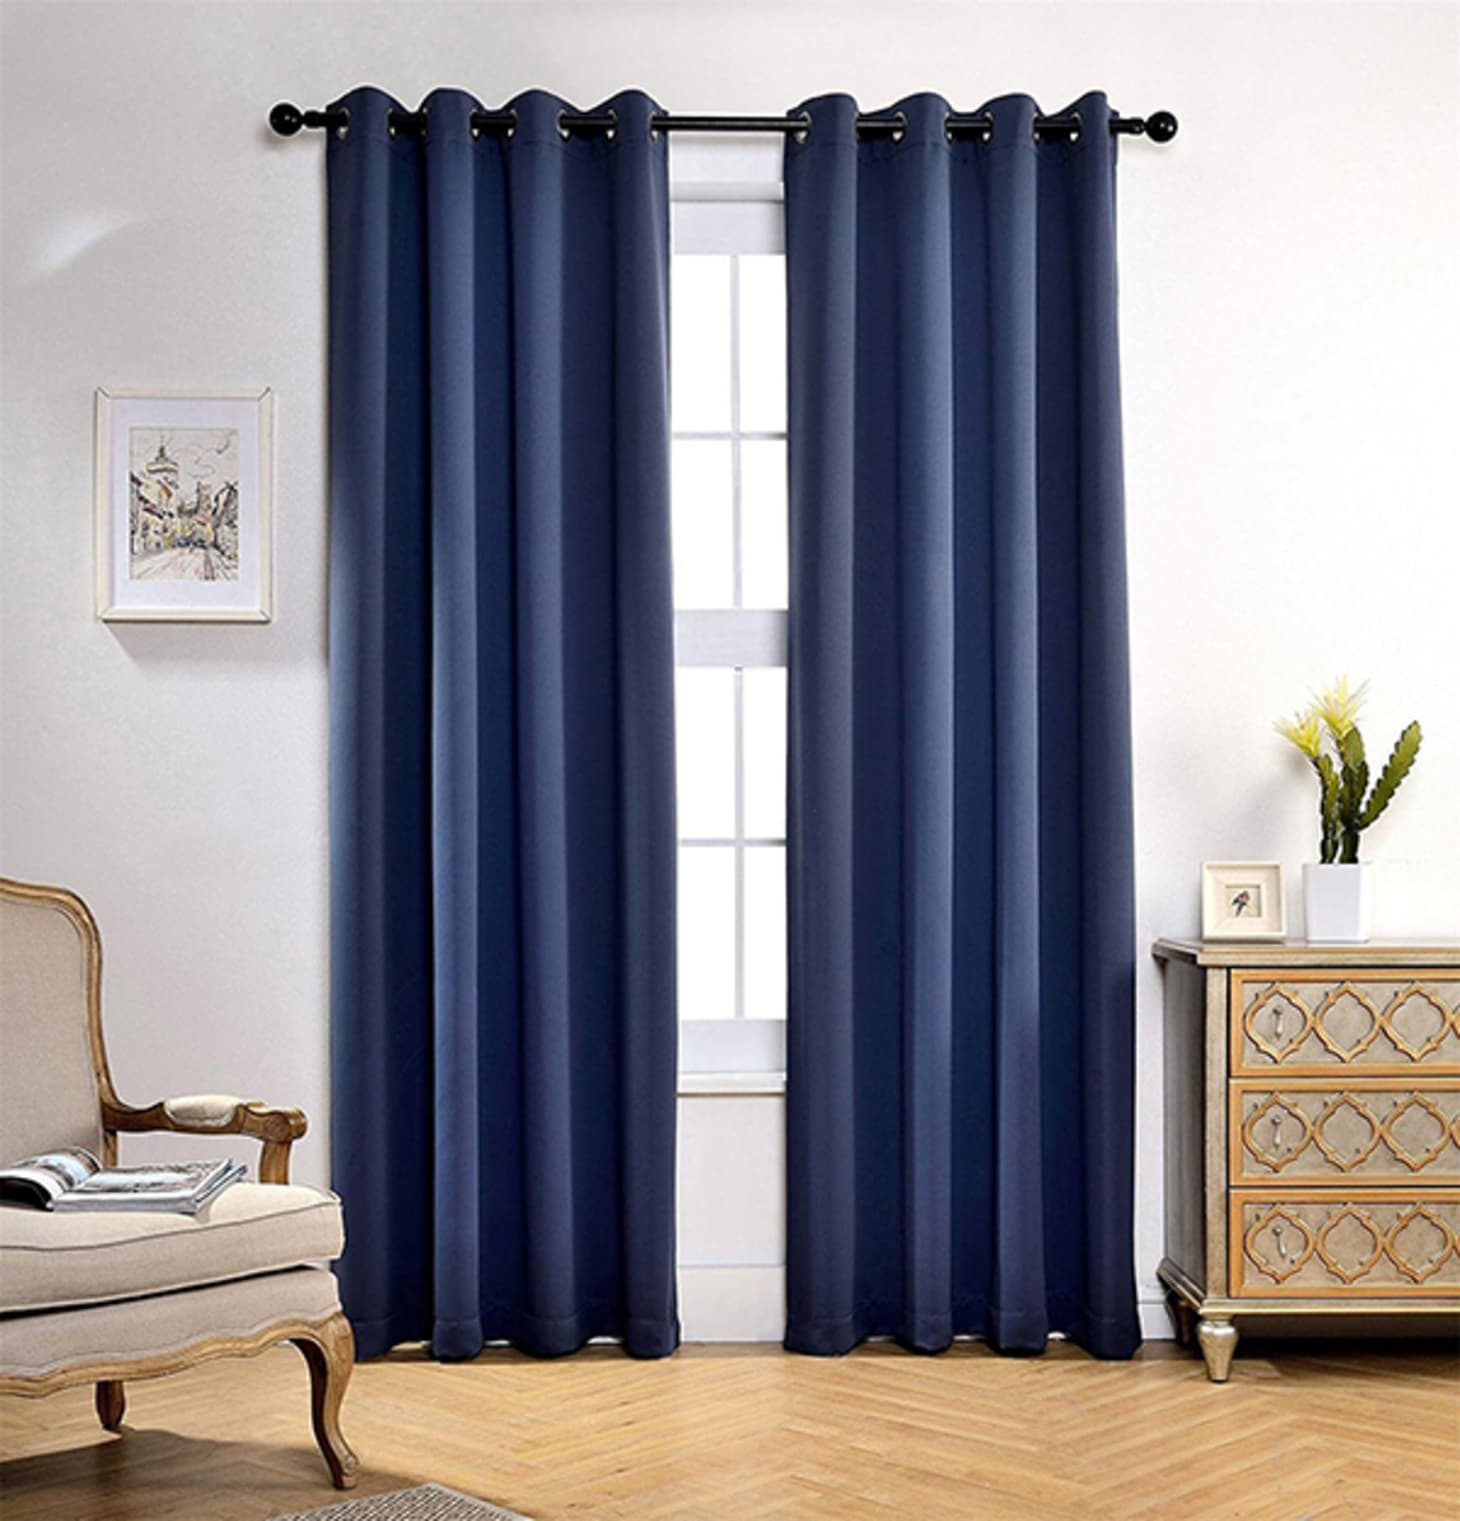 Best Insulated Blackout Curtains | Apartment Therapy With Regard To Thermal Insulated Blackout Grommet Top Curtain Panel Pairs (View 11 of 30)